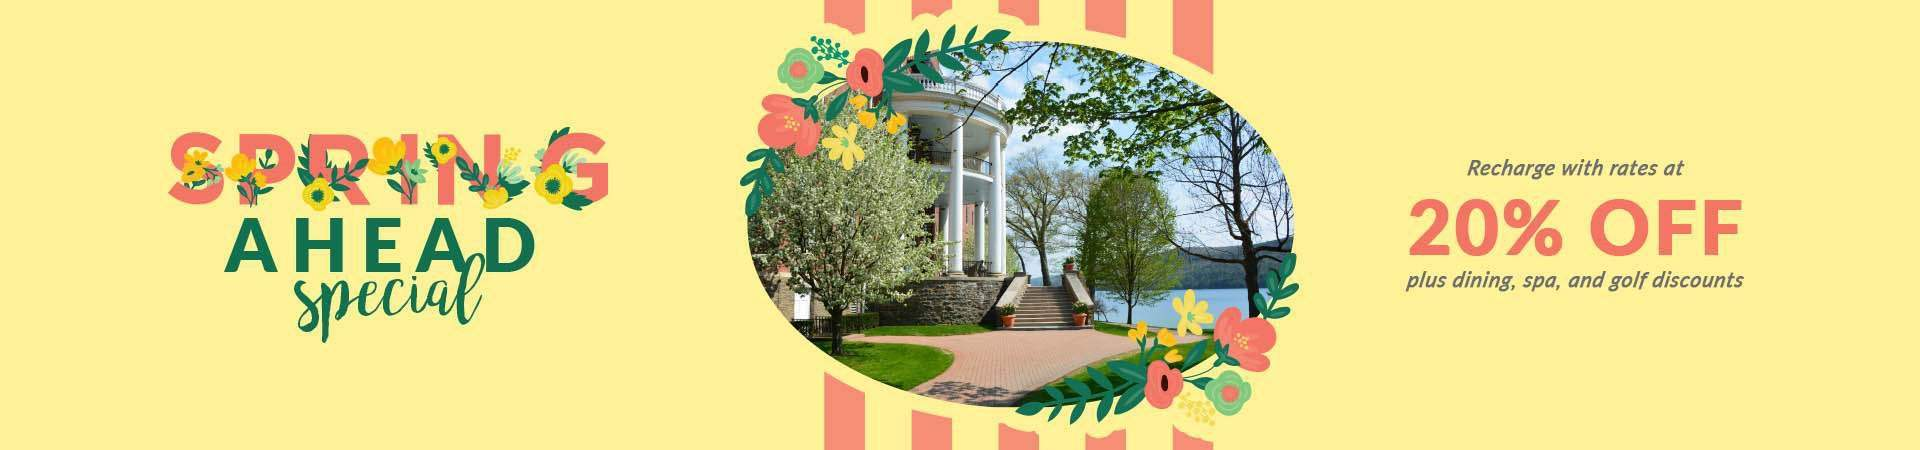 Offer Packages in Cooperstown, New York